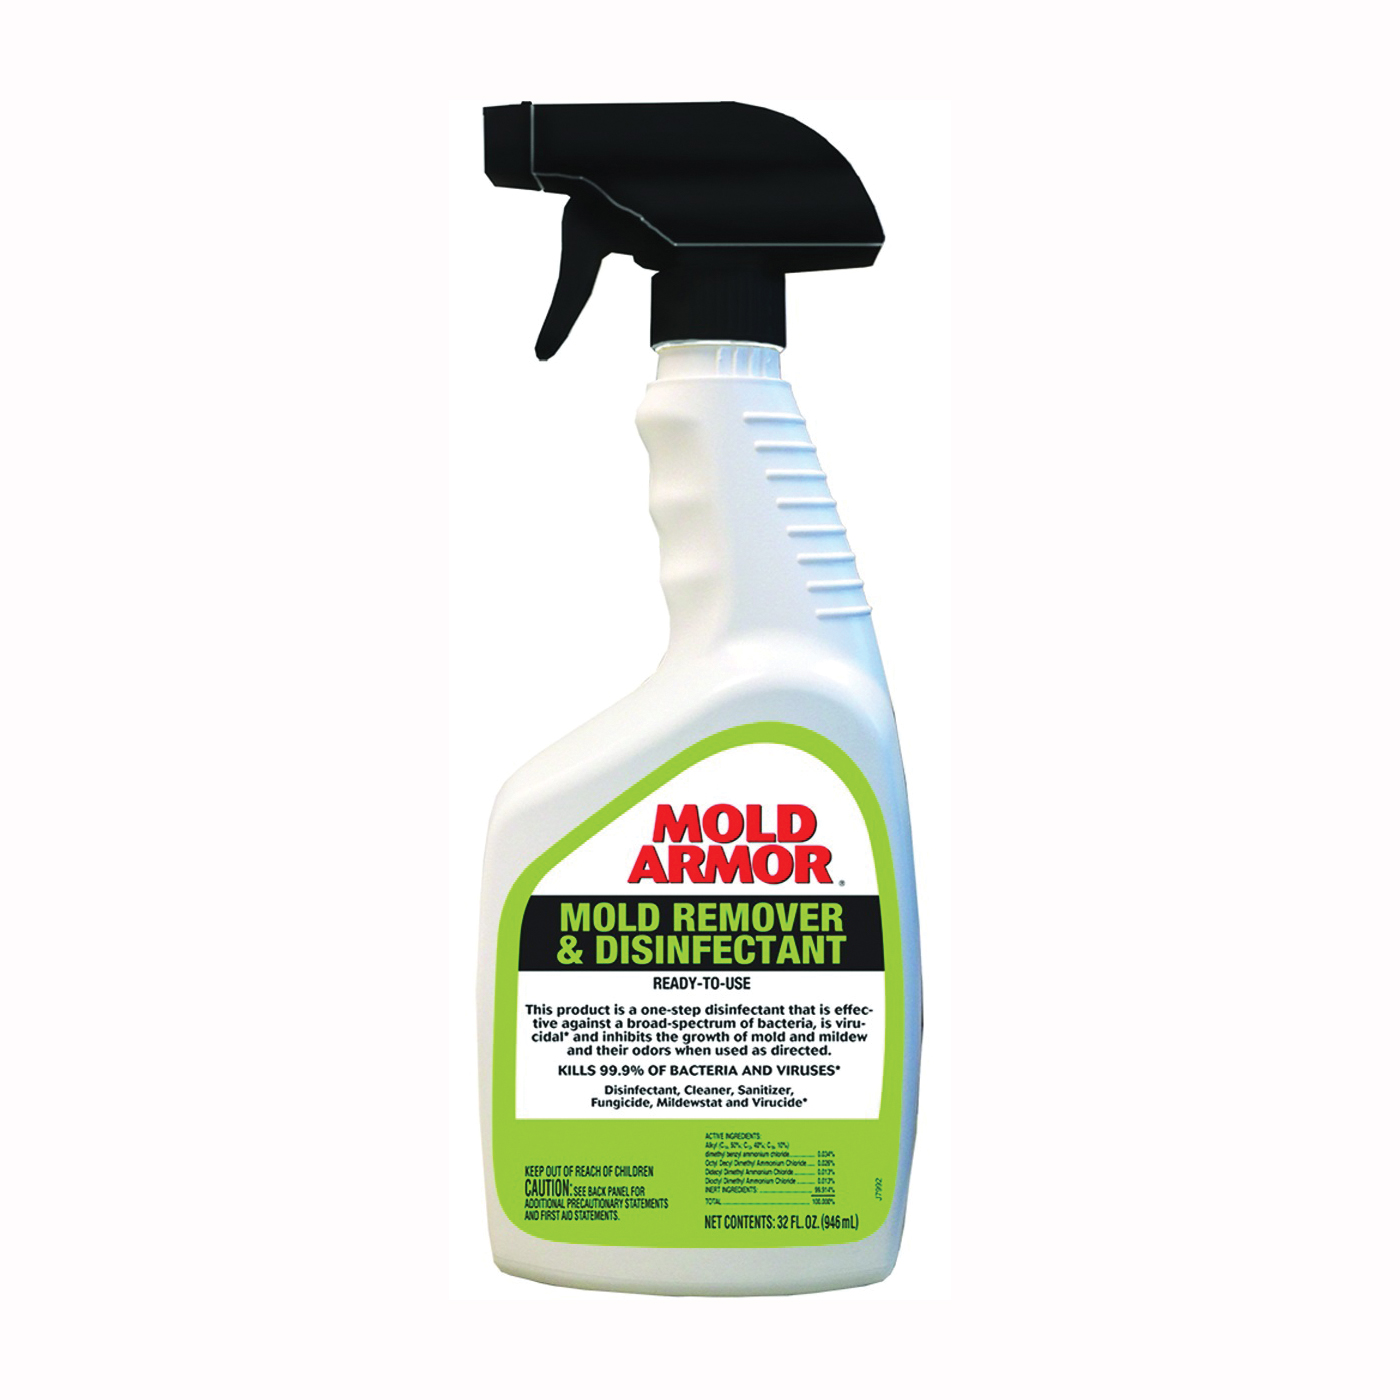 Picture of Mold Armor FG552 Mold Remover and Disinfectant, 32 oz Package, Bottle, Liquid, Benzaldehyde Organic, Clear